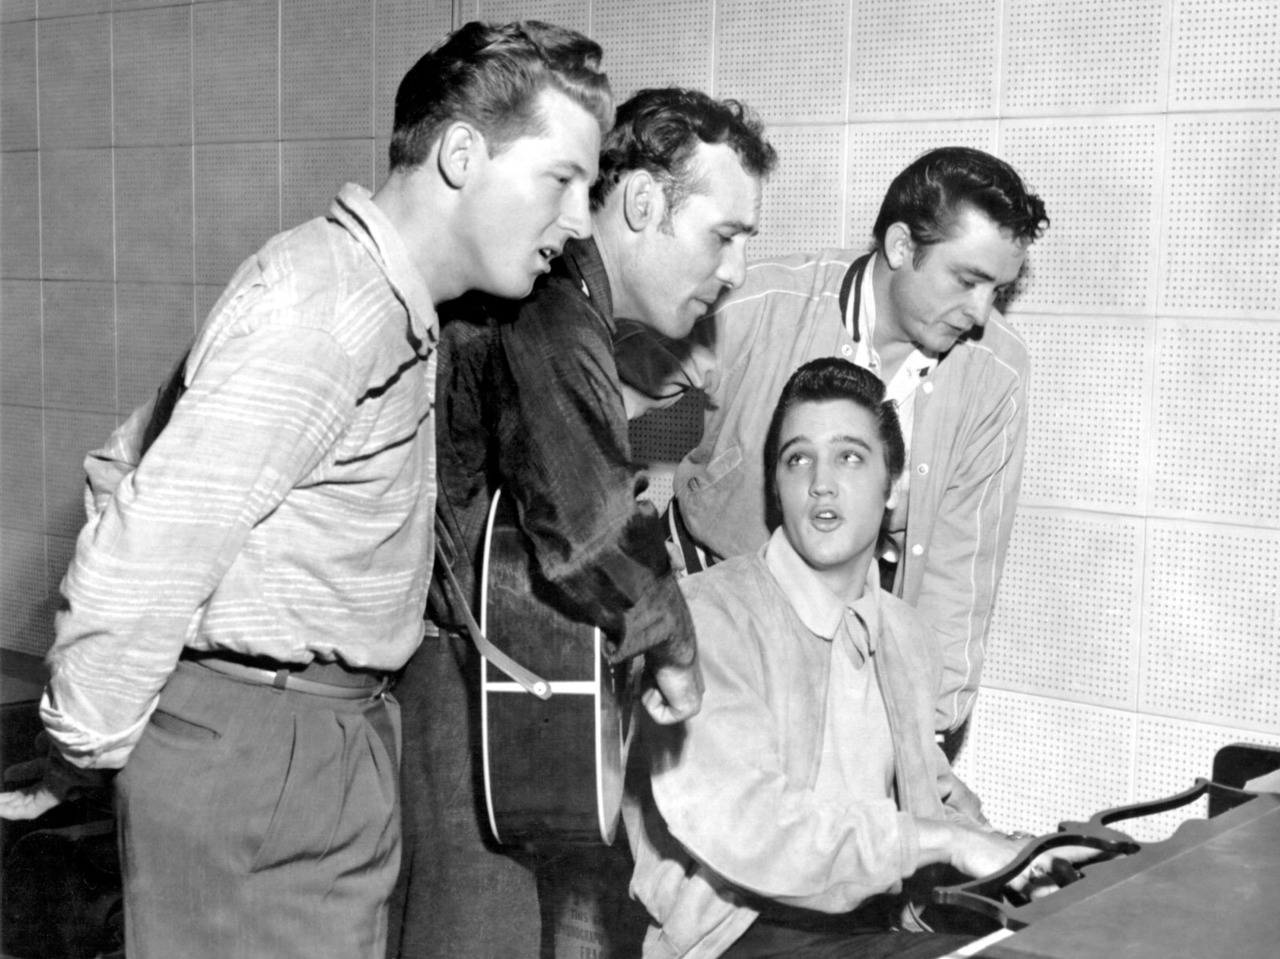 Elvis Presley, Johnny Cash, Jerry Lee Lewis, y Carl Perkins interpretaron himnos cristianos a piano, en los estudios de Sun Records